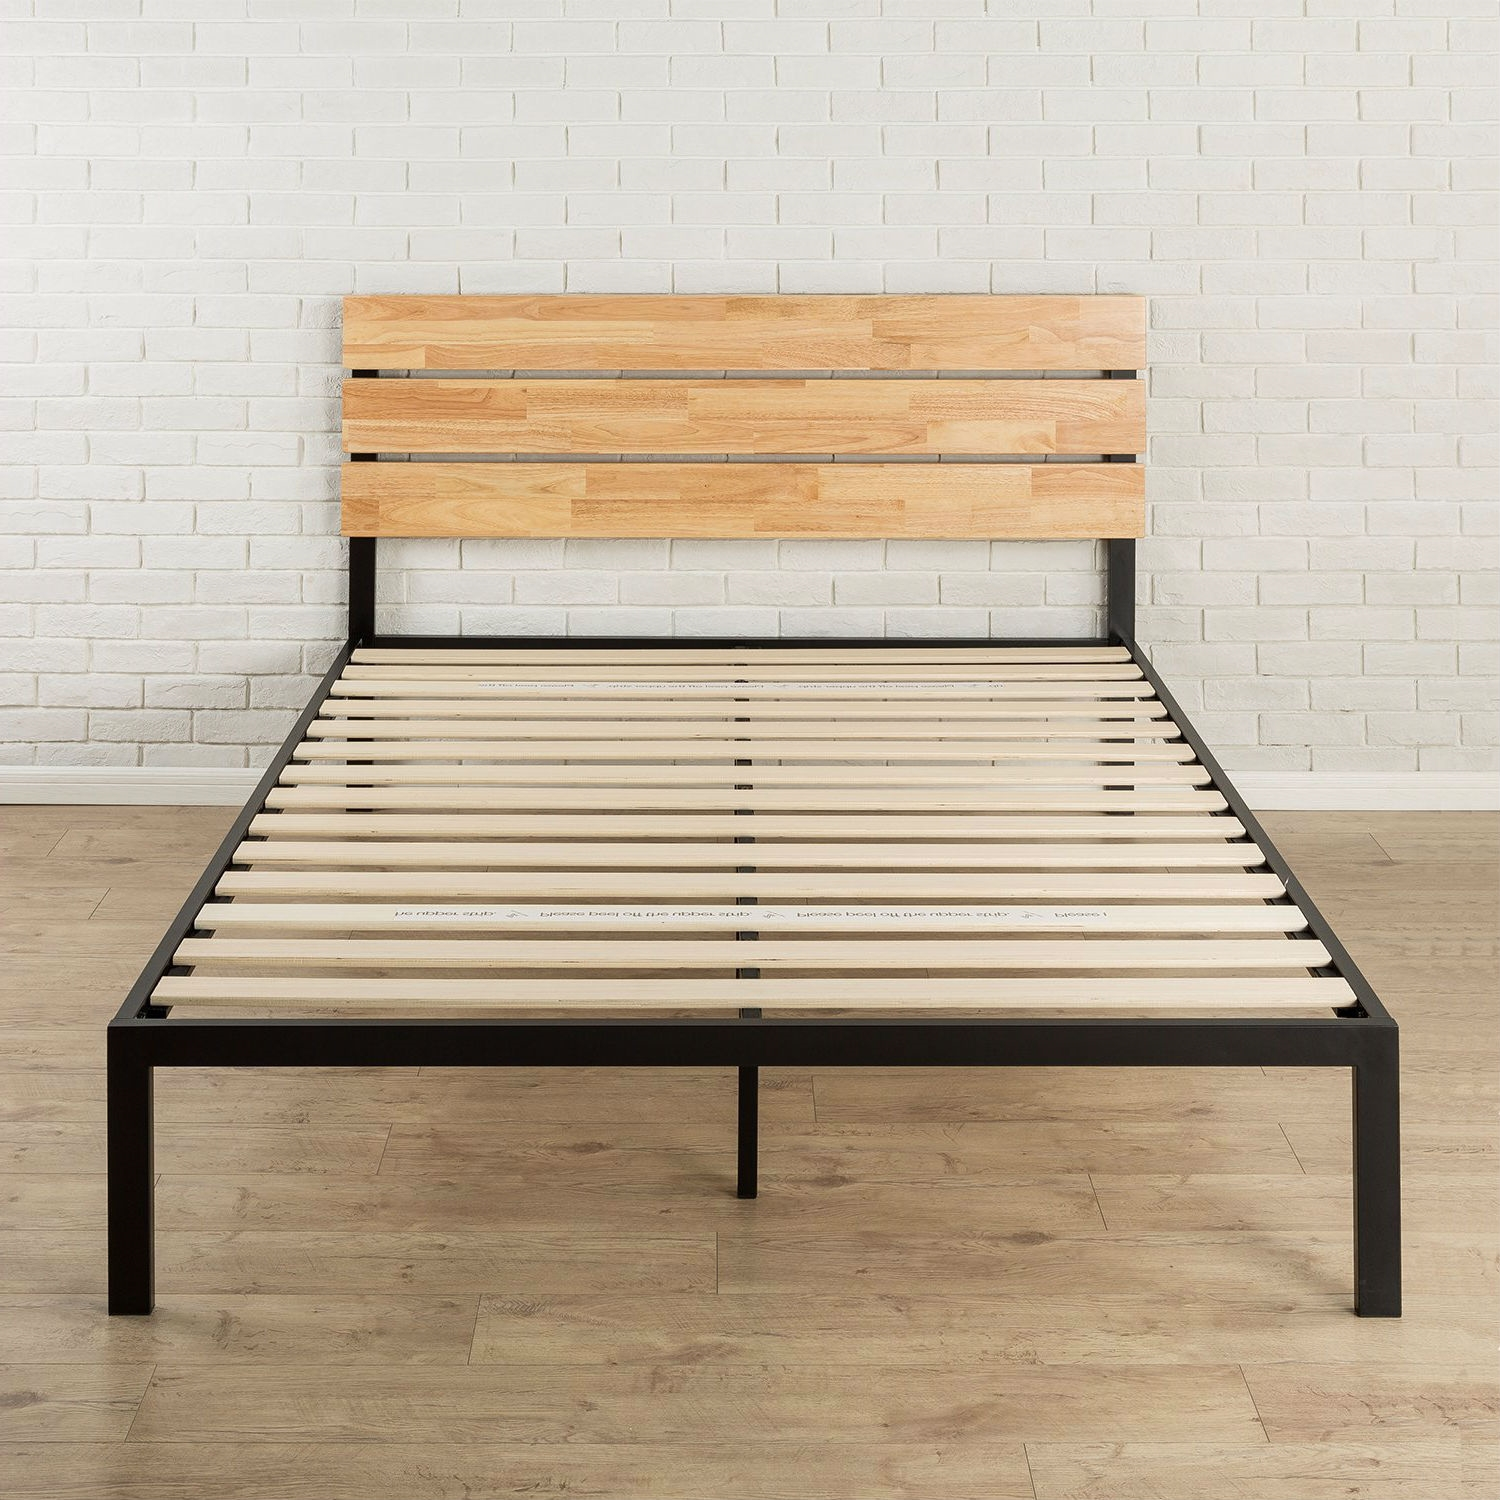 Full Size Metal Platform Bed Frame With Wood Slats And Headboard Fastfurnishings